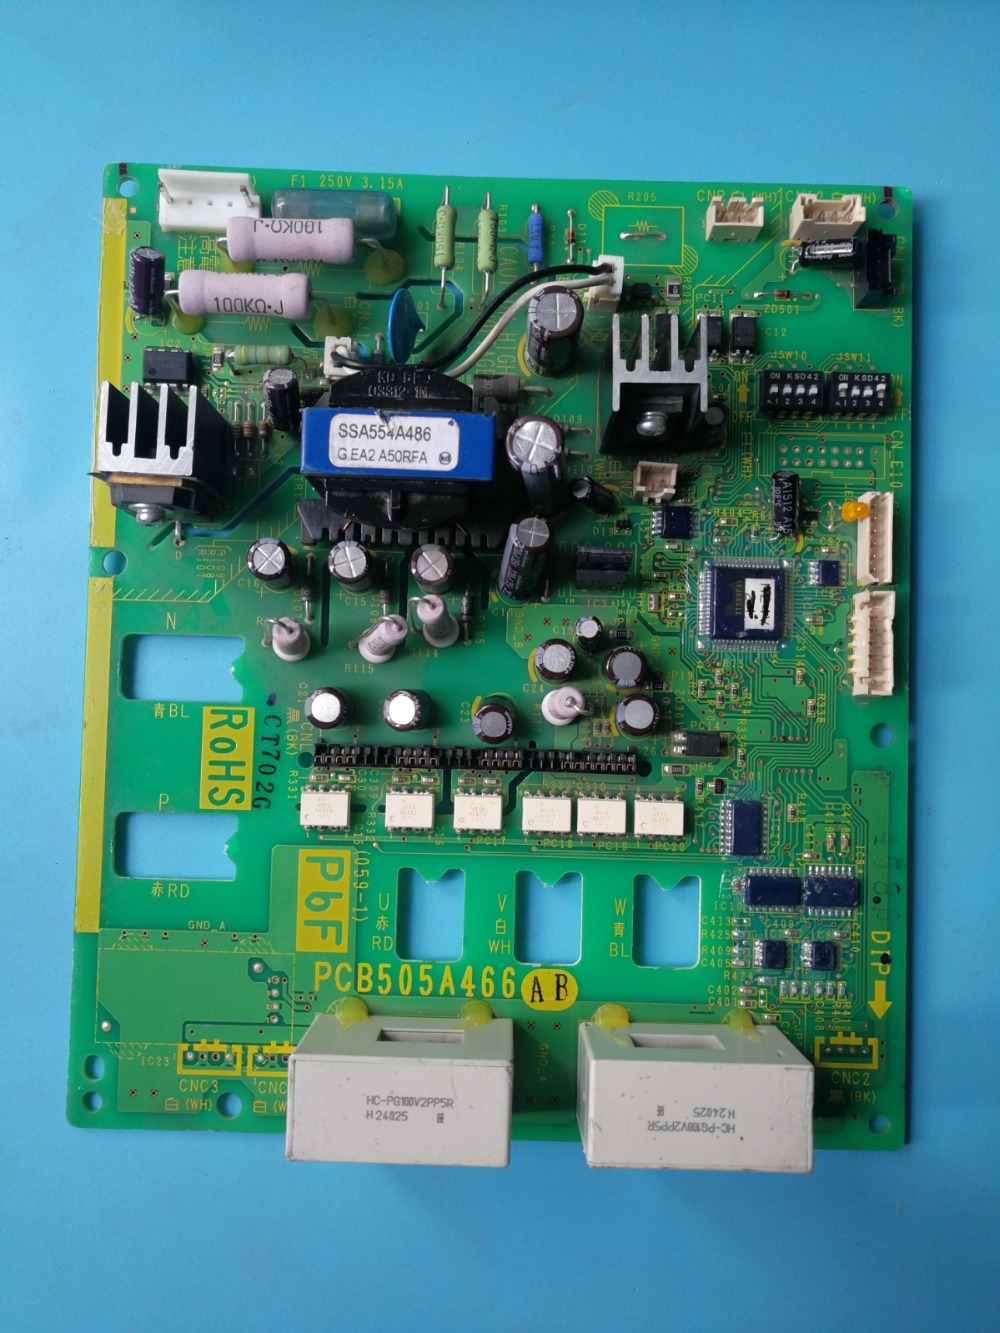 PCB505A466AA PCB505A466AB Good Working Tested